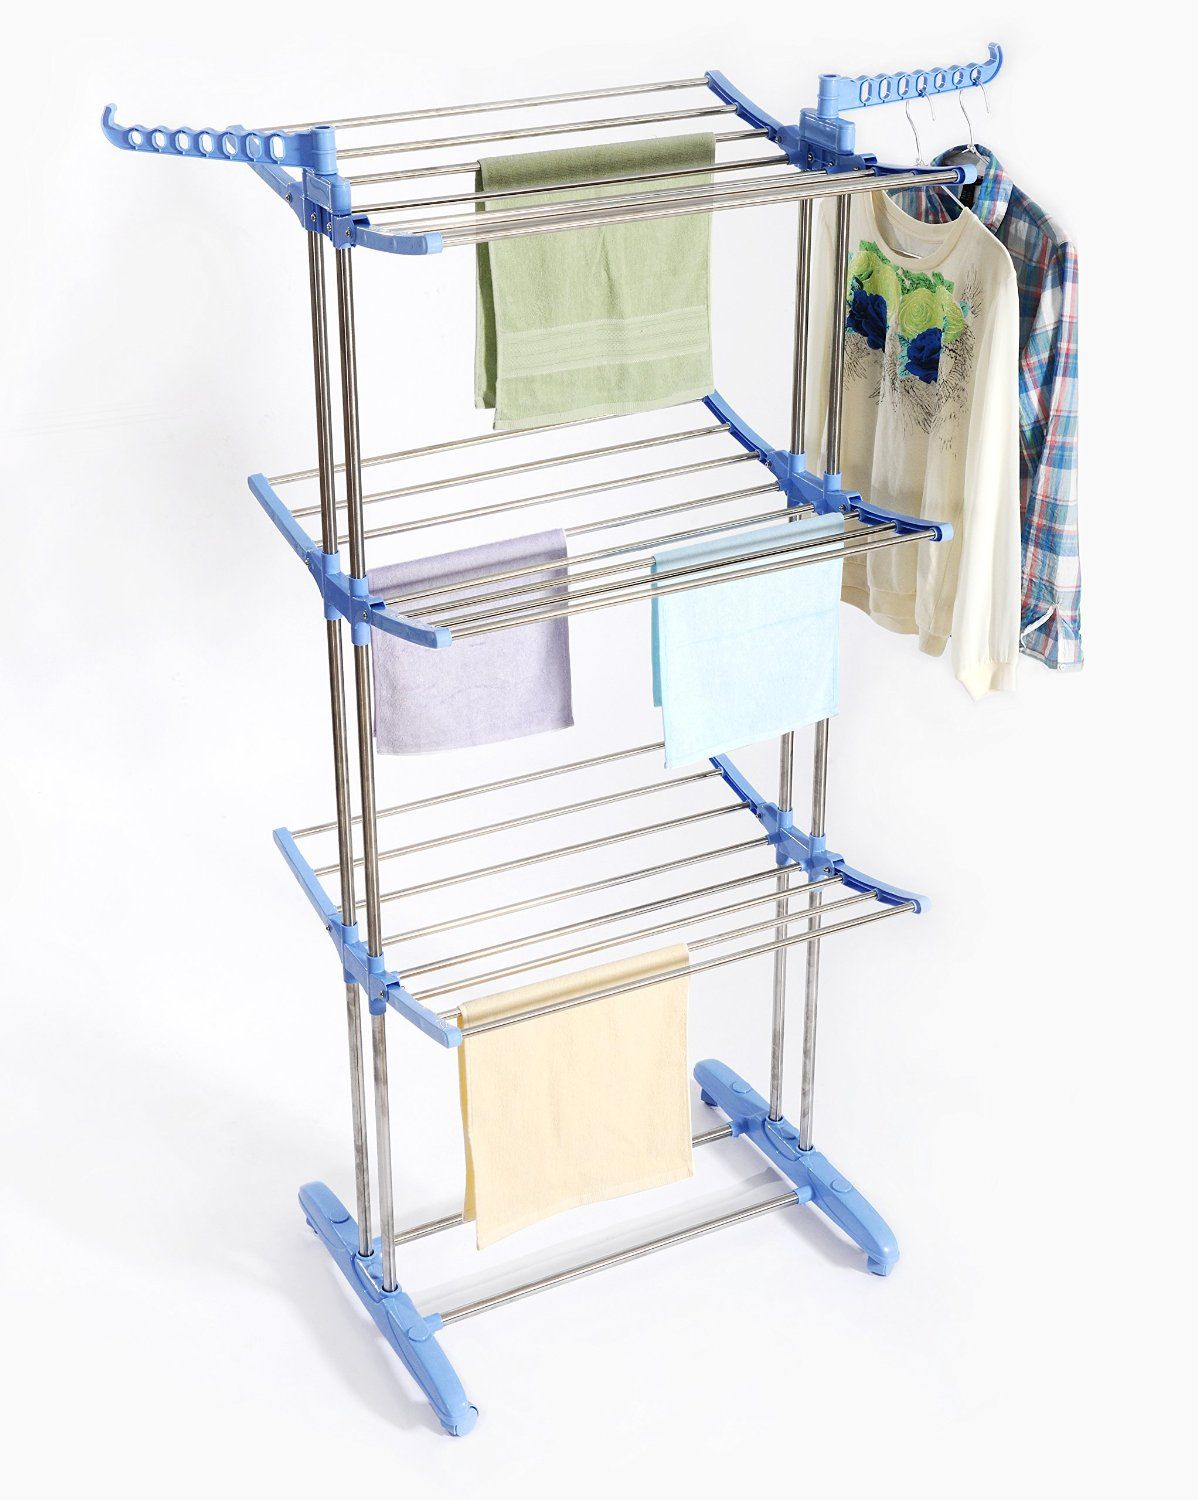 Amazon.com: Premium Clothes Drying Rack Stainless Steel Foldable Heavy  Duty, Portable,